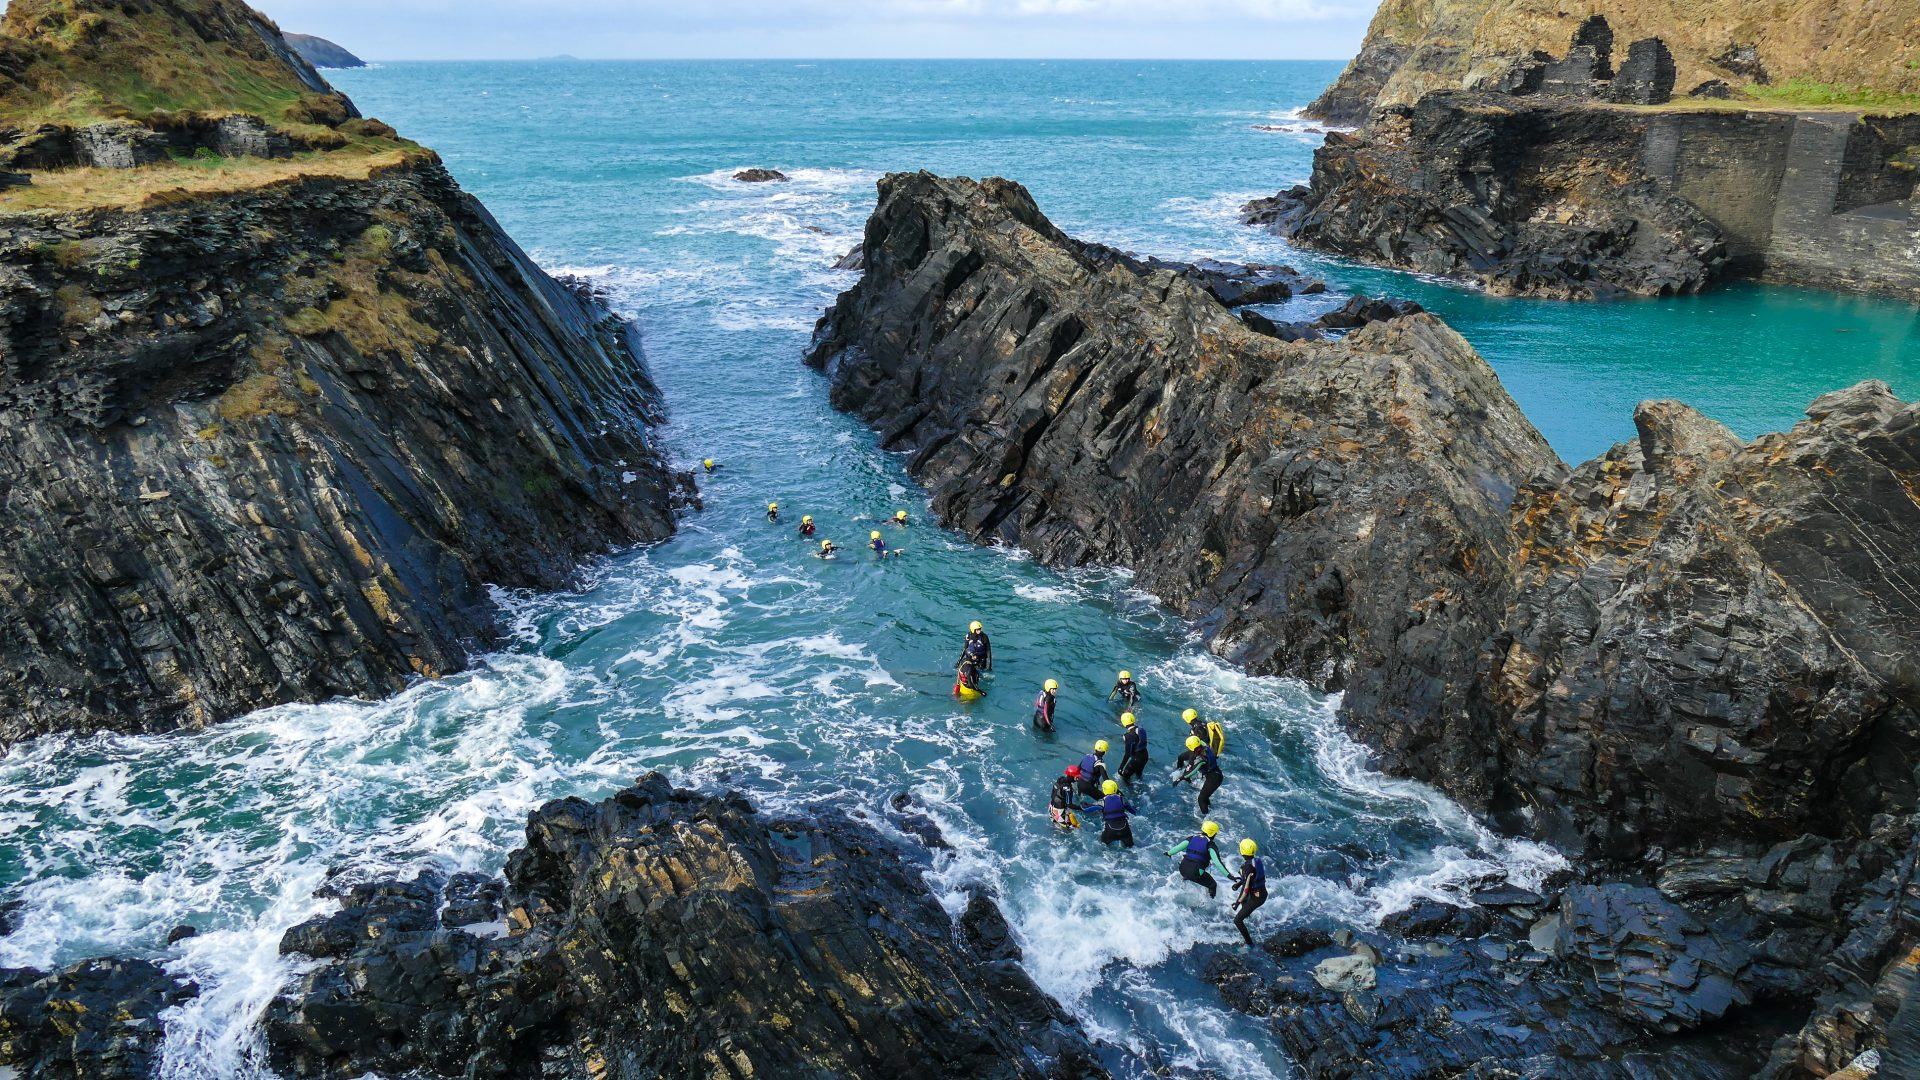 The surrounding views are spectacular for this group of coasteering clients who carefully enter the water.